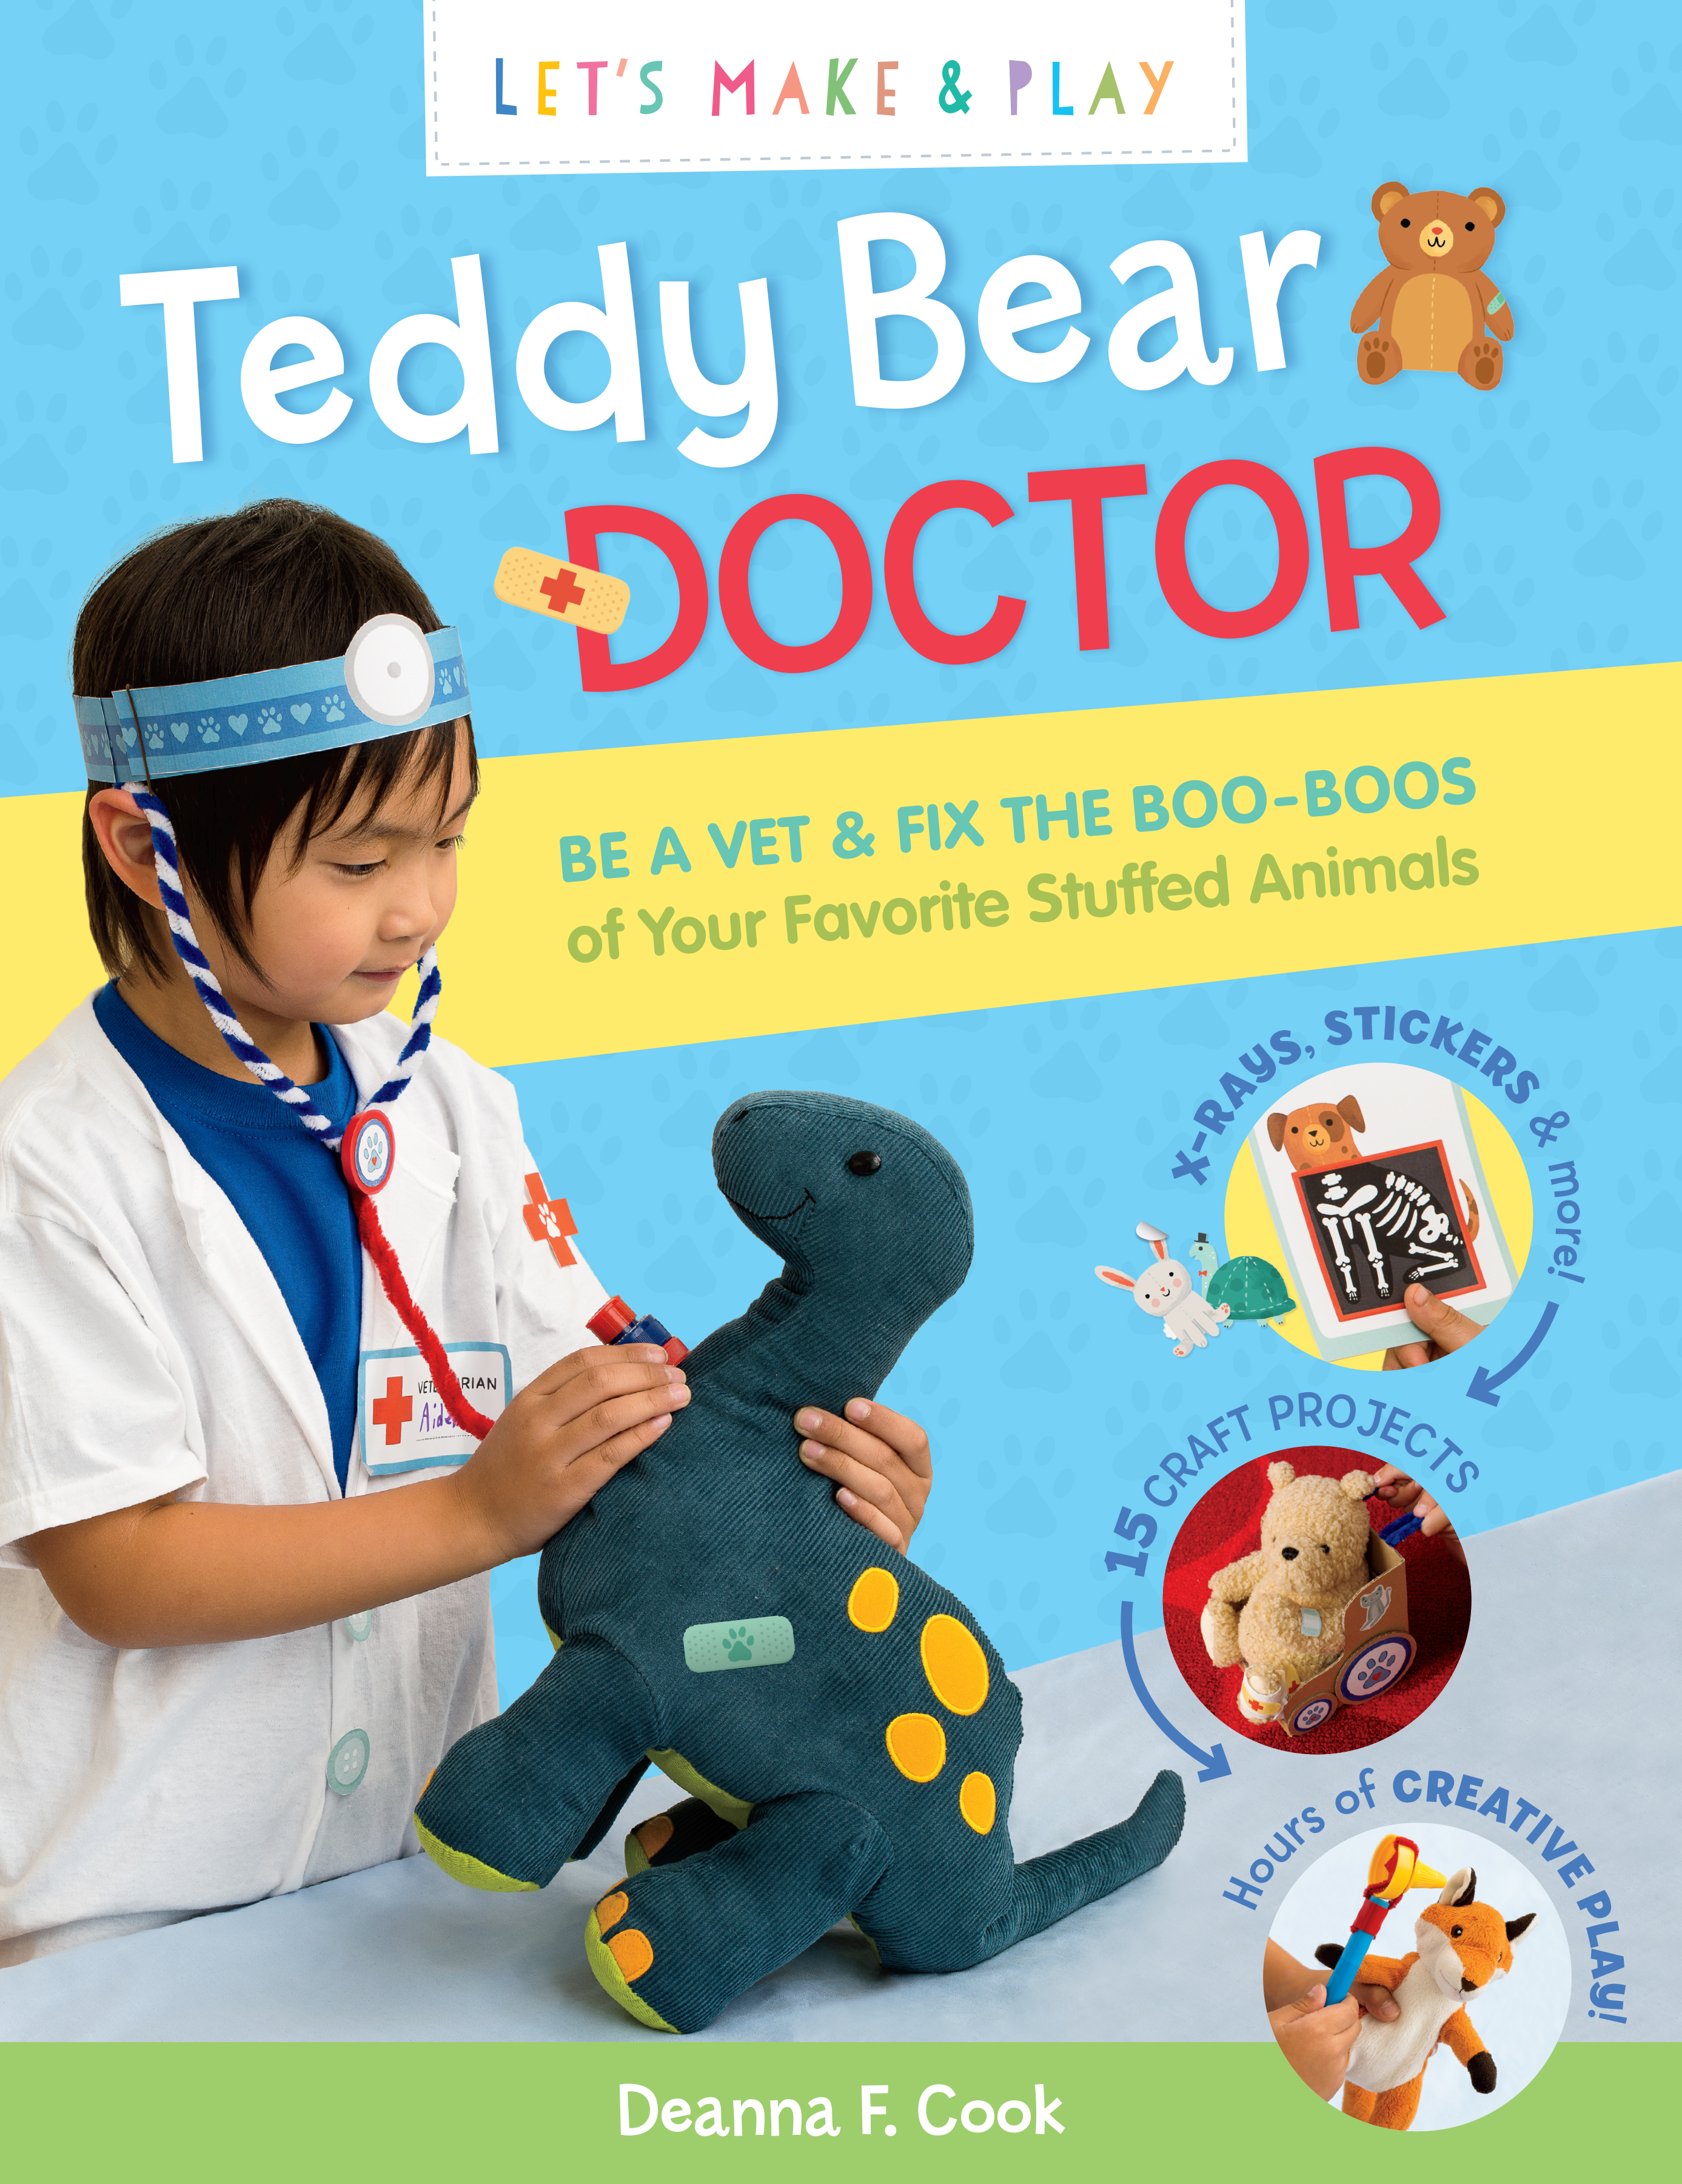 Teddy Bear Doctor: A Let's Make & Play Book Be a Vet & Fix the Boo-Boos of Your Favorite Stuffed Animals - Deanna F. Cook